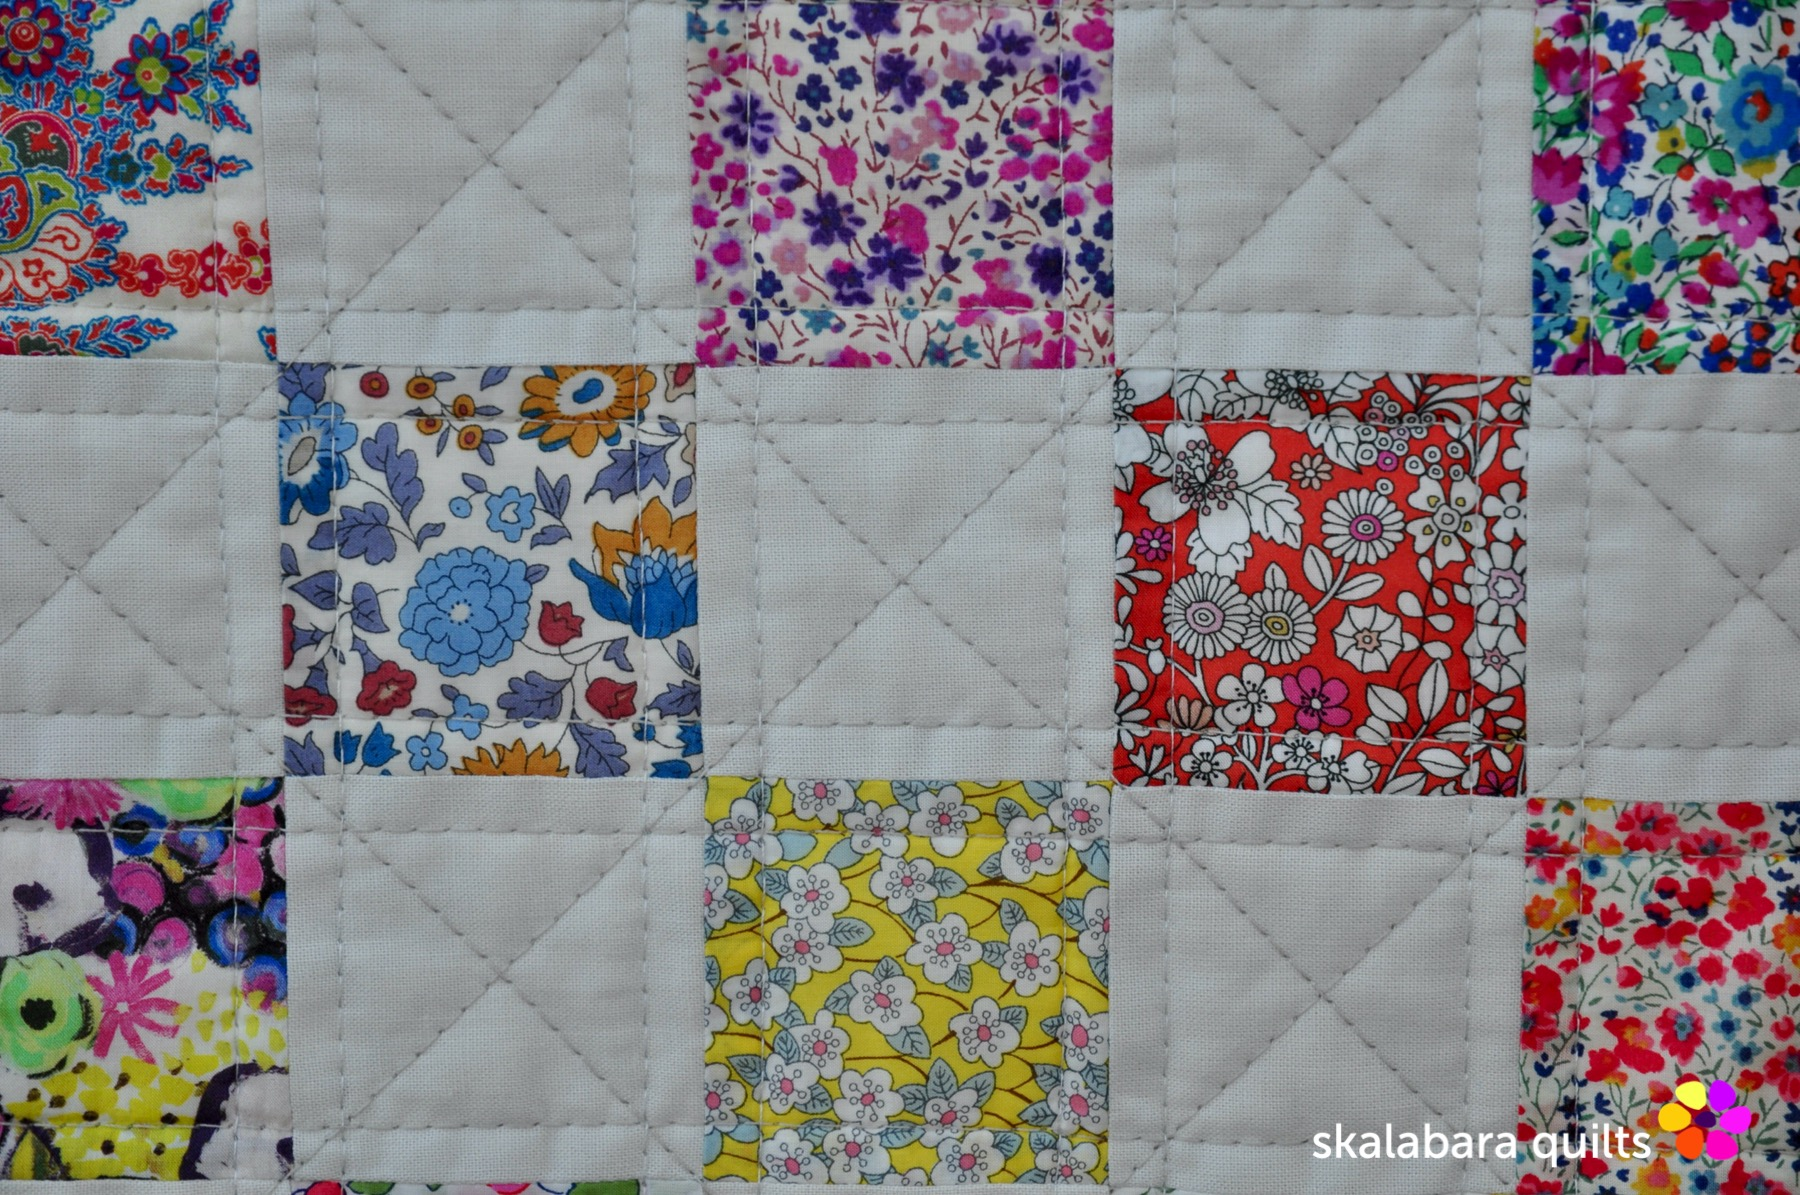 liberty checkered quilt detail 2 - skalabara quilts